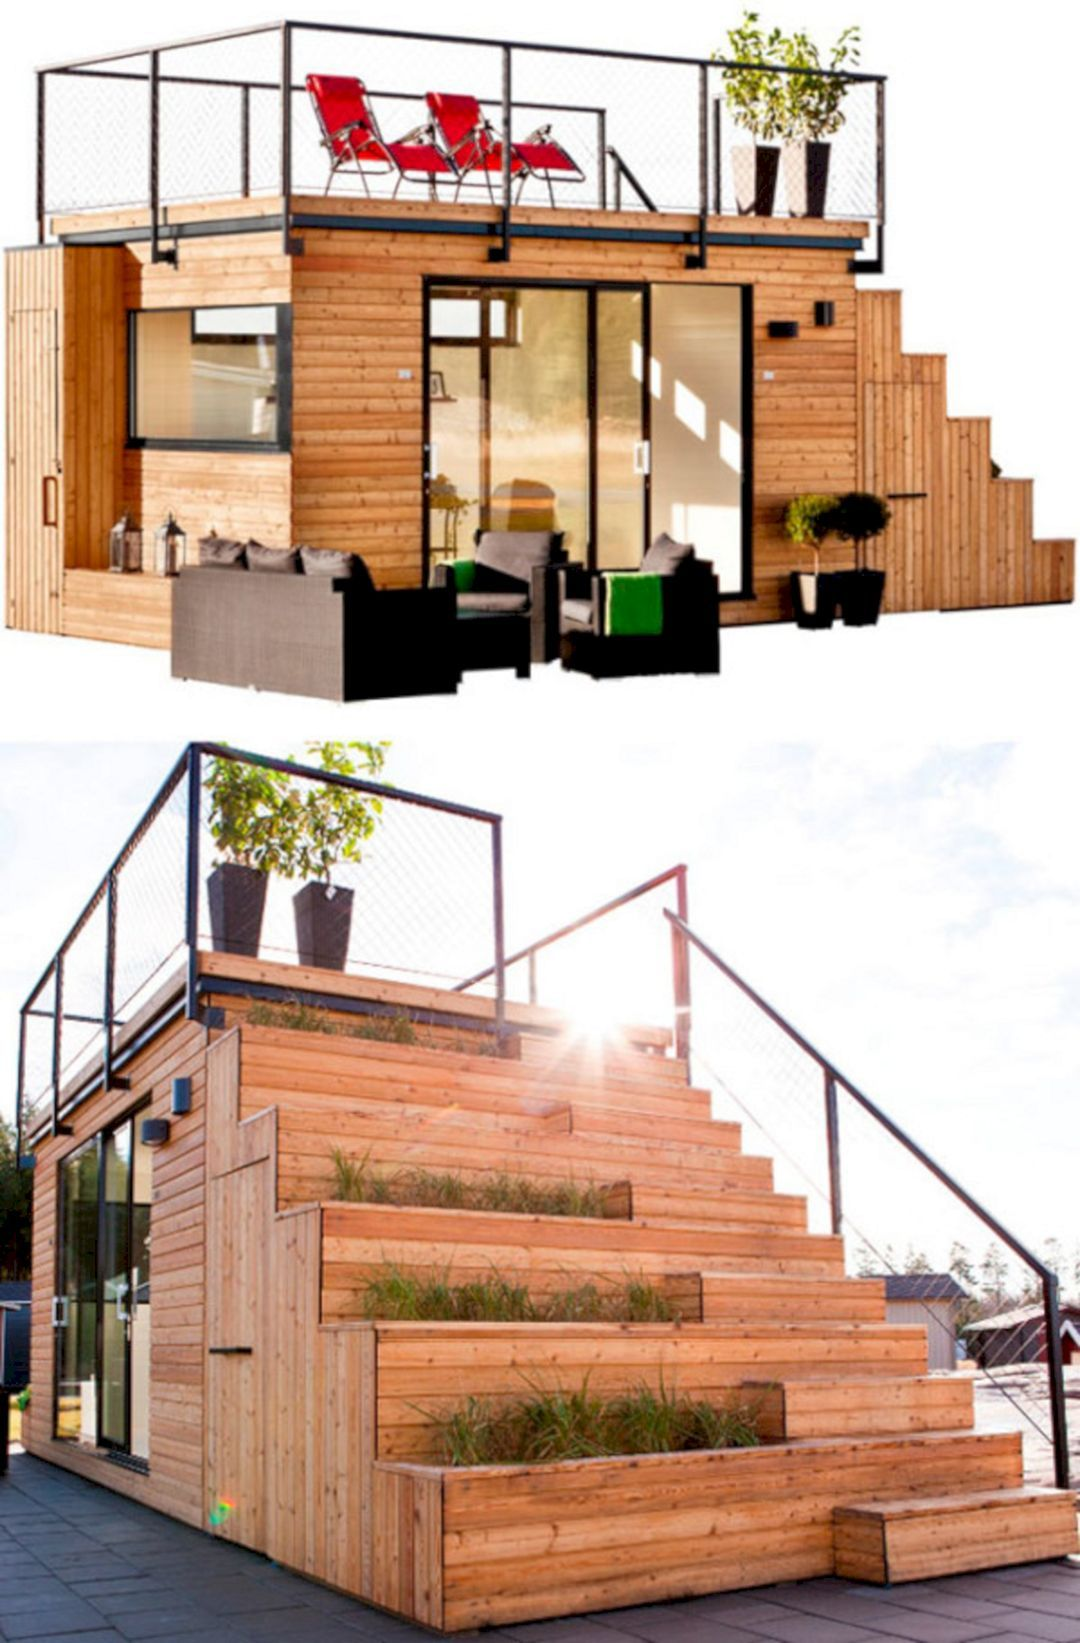 High Quality The Best Modern Tiny House Design Small Homes Inspirations No 124